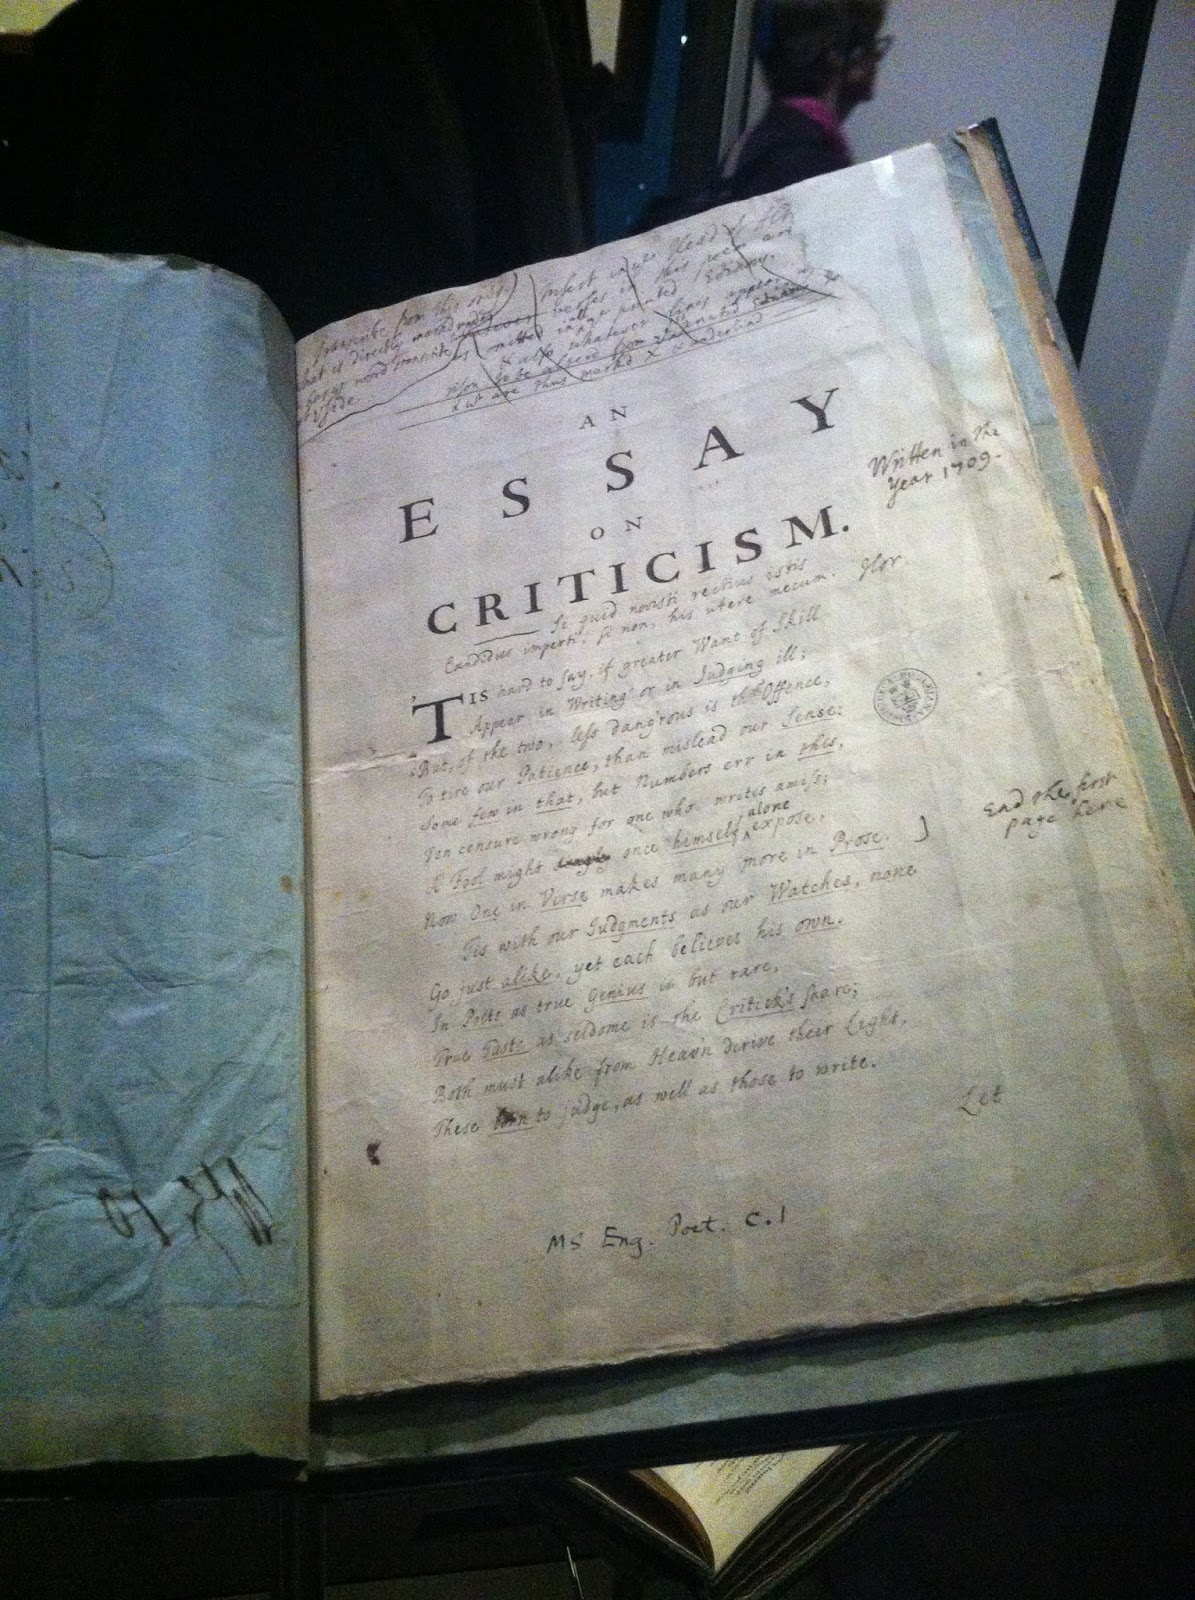 an essay on criticism by alexander pope alexander pope an essay on criticism educationcing